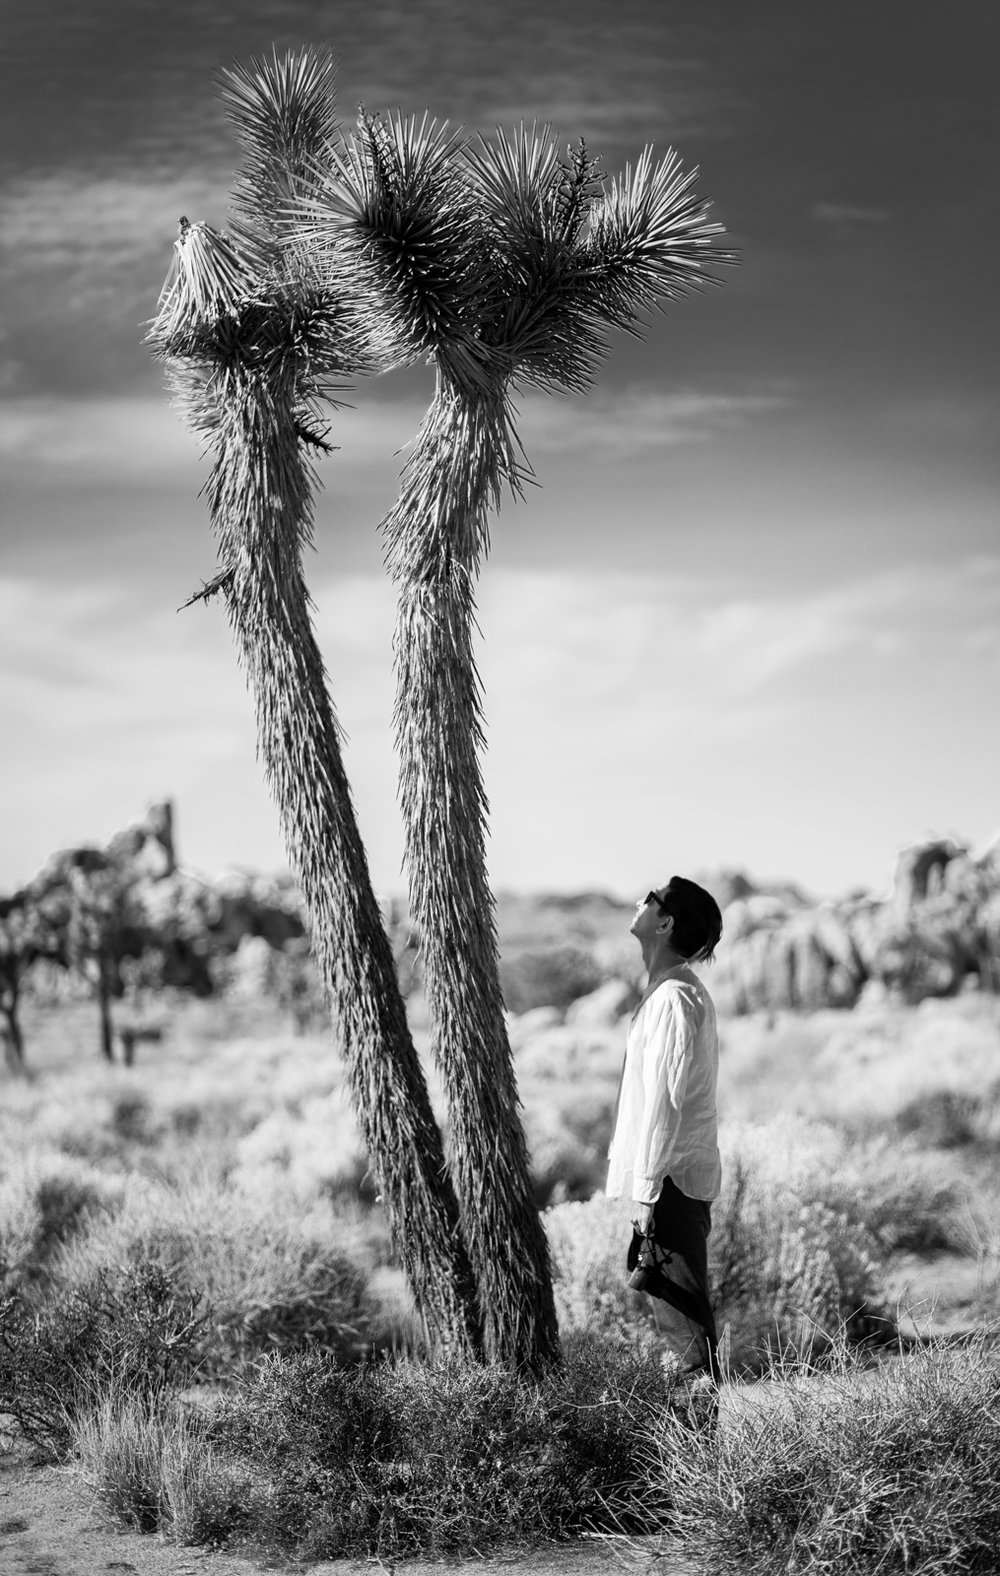 alexa_wright_joshua_tree-7.jpg